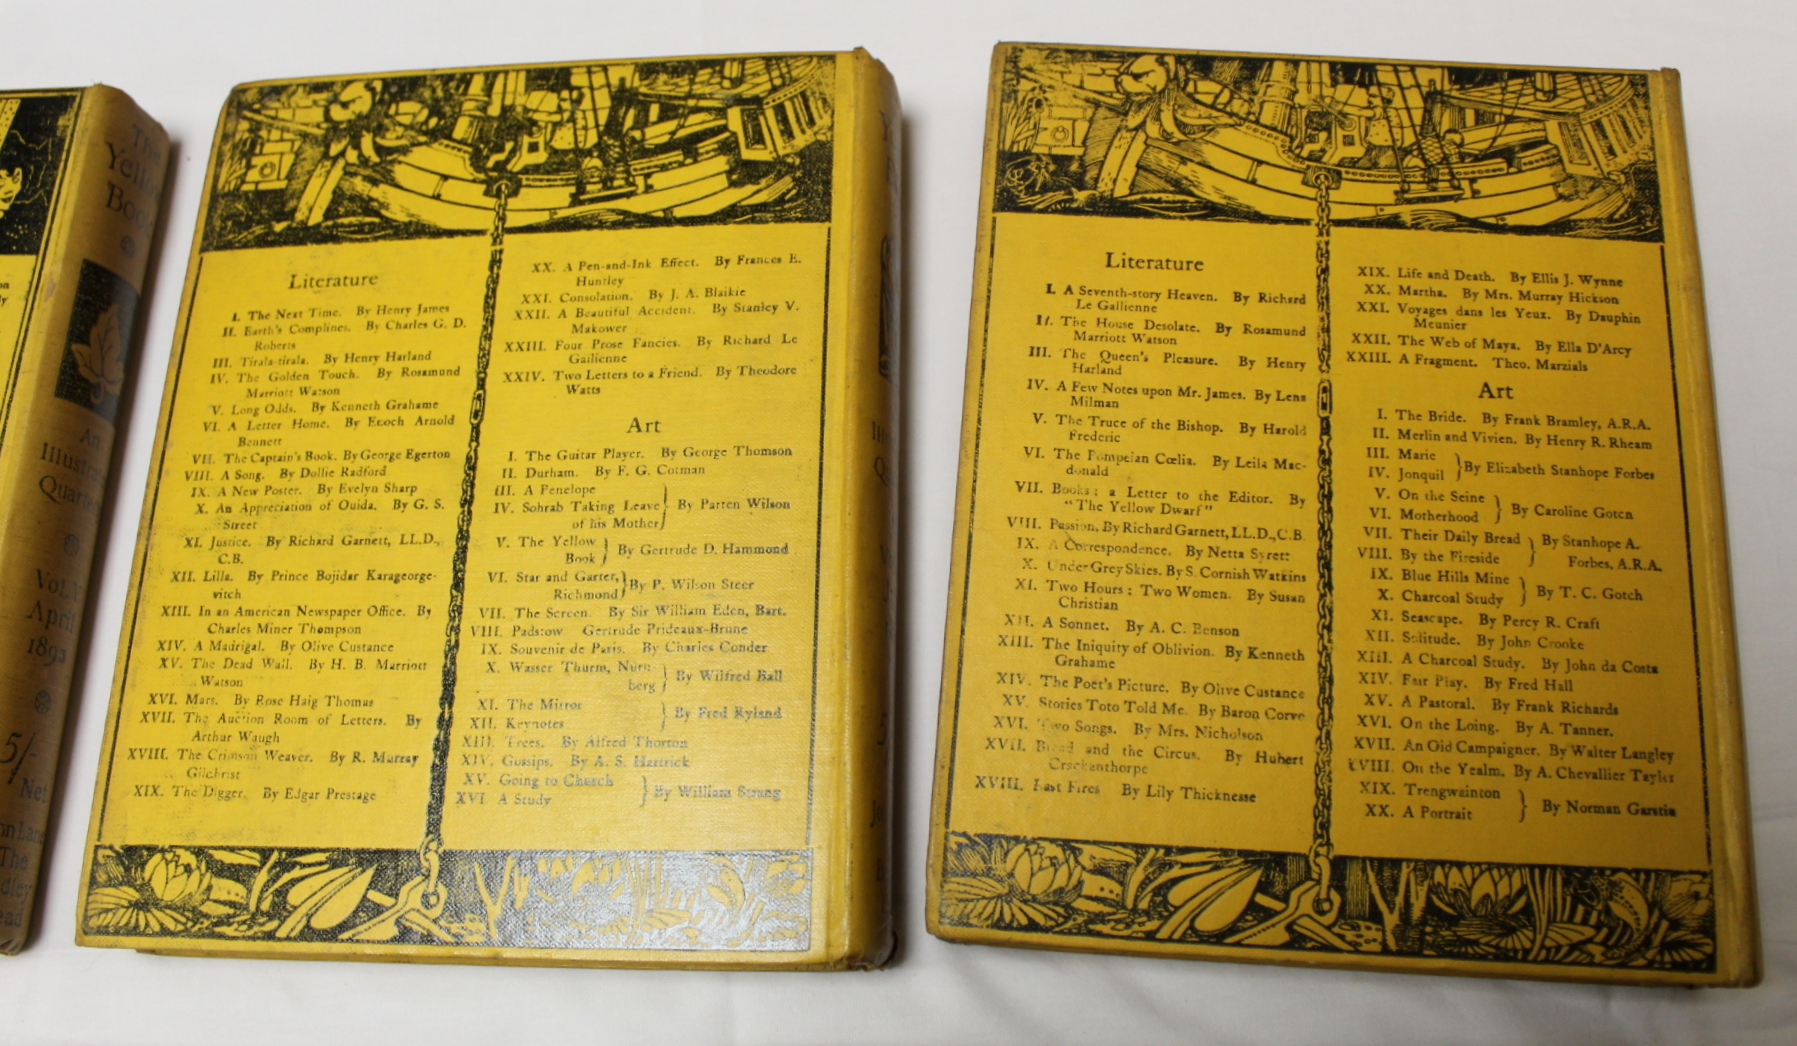 THE YELLOW BOOK.An Illustrated Quarterly. A set of 13 vols., many fine illus. Small quarto. - Image 39 of 45